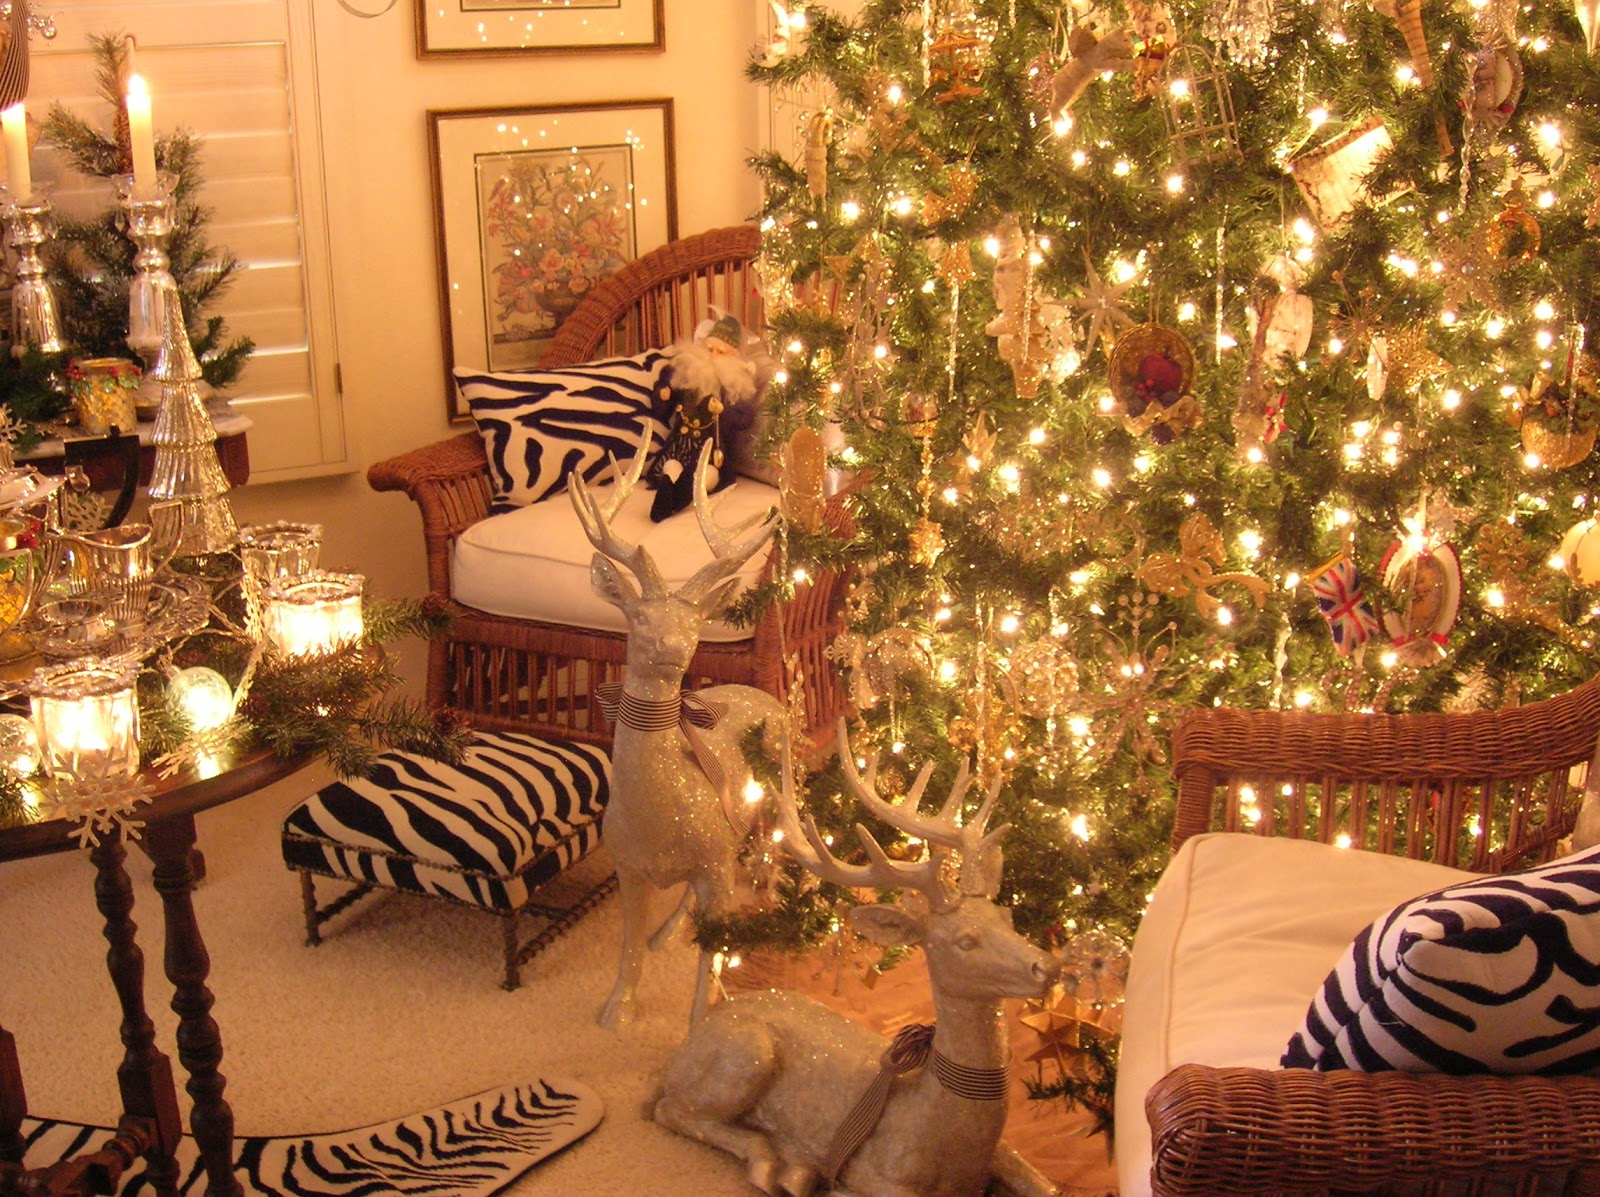 come on in and gather round the treeim getting organized for christmas eve when family and friends will gather with us to enjoy our traditional menu of